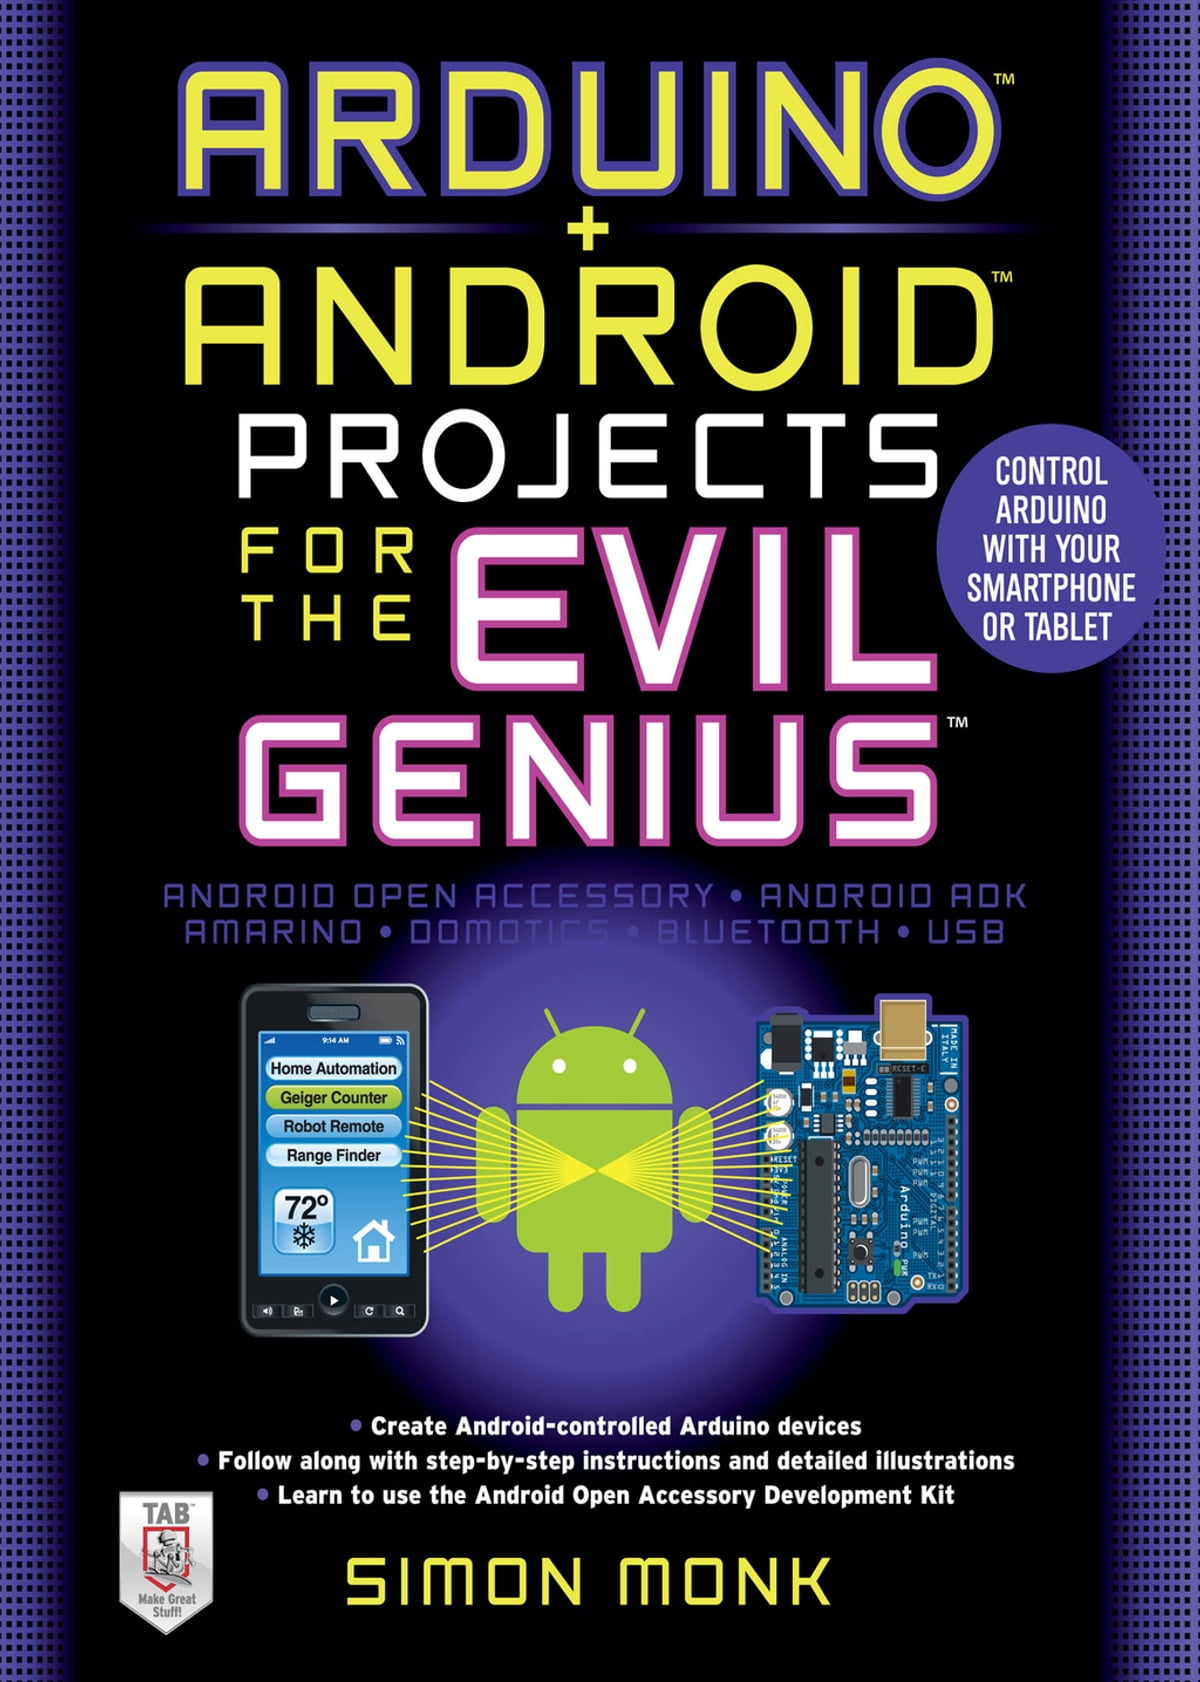 Arduino Android Projects For The Evil Genius Control With Minecraft How To Make An Instant Off Delayed On Redstone Circuit Your Smartphone Or Tablet Ebook By Simon Monk 9780071775977 Rakuten Kobo